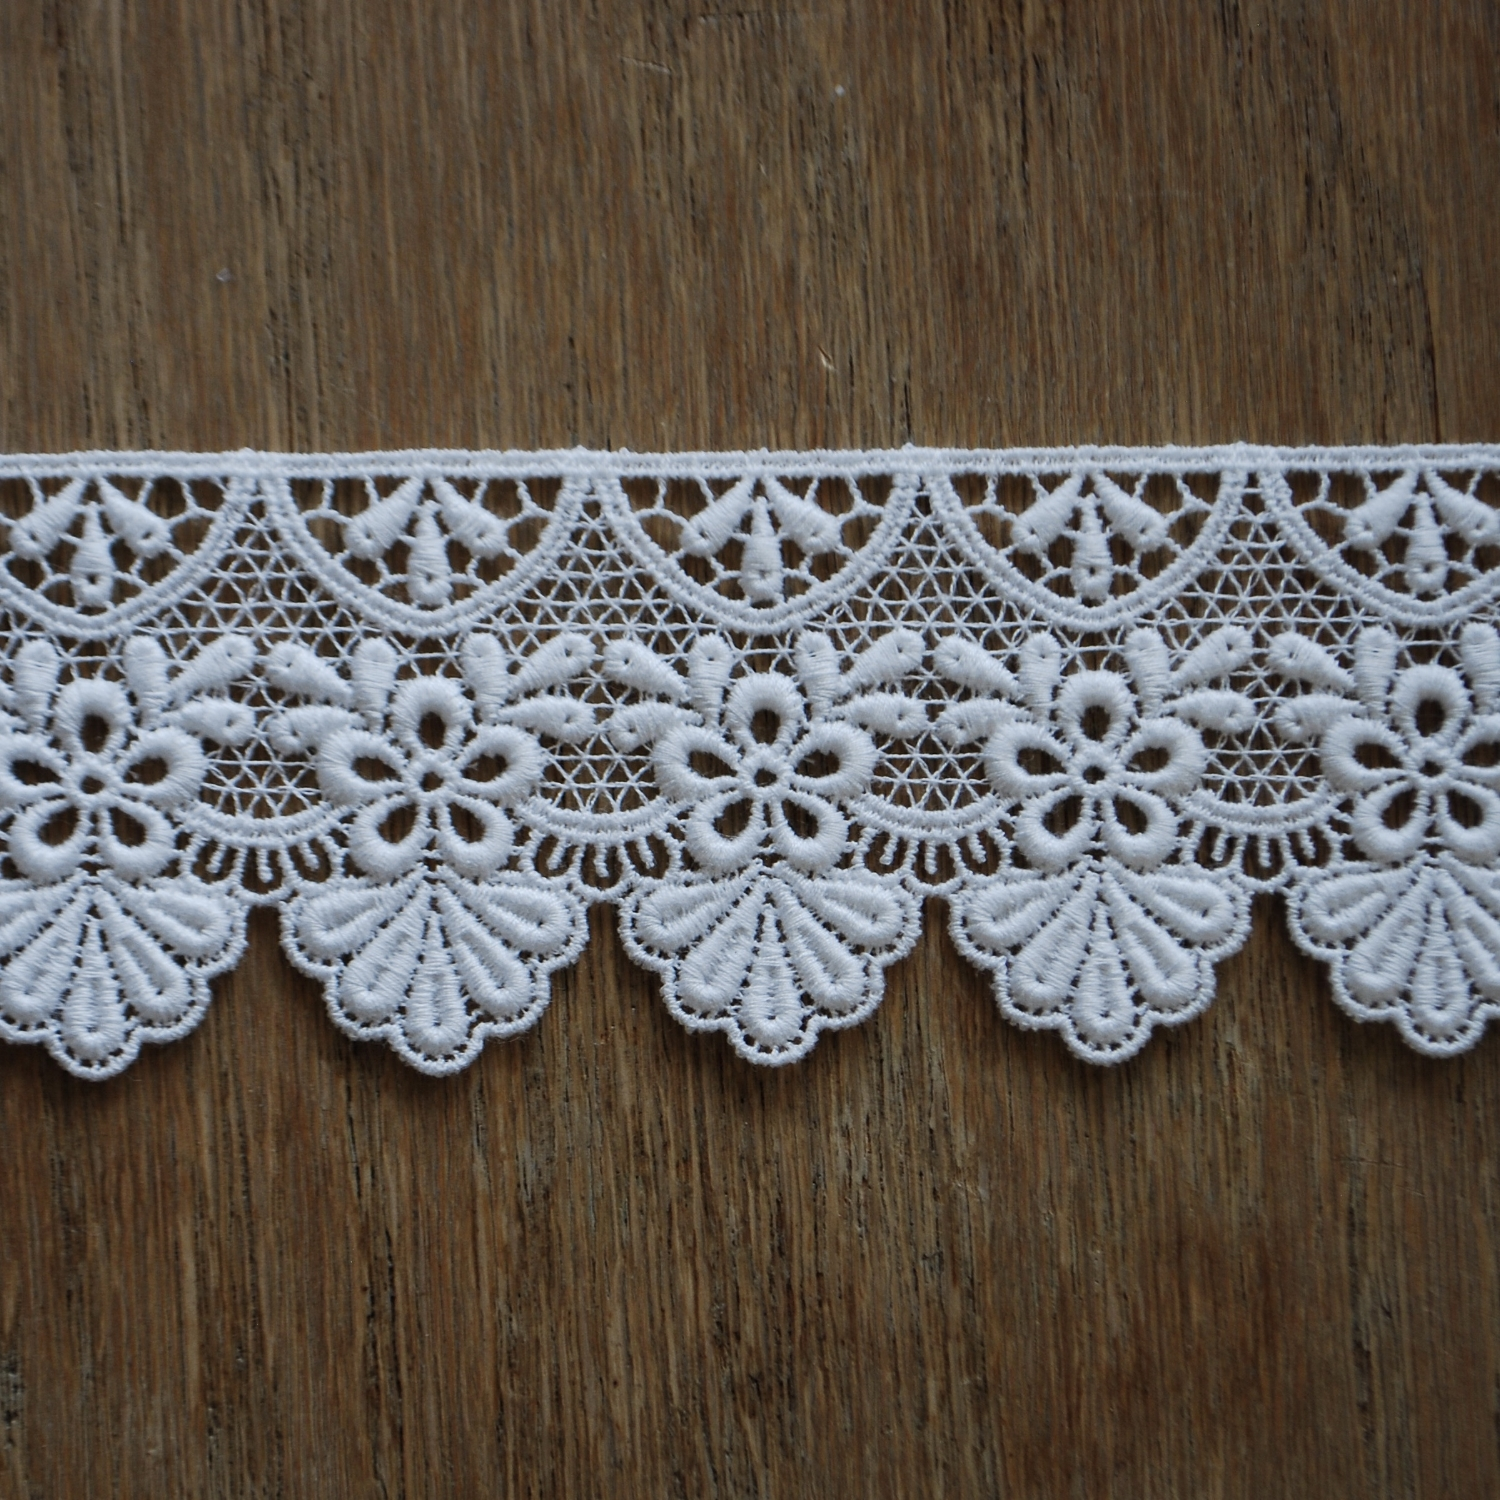 Guipure is a heavy lace created over a coarse mesh ground. It is pronounced (gee-poor).